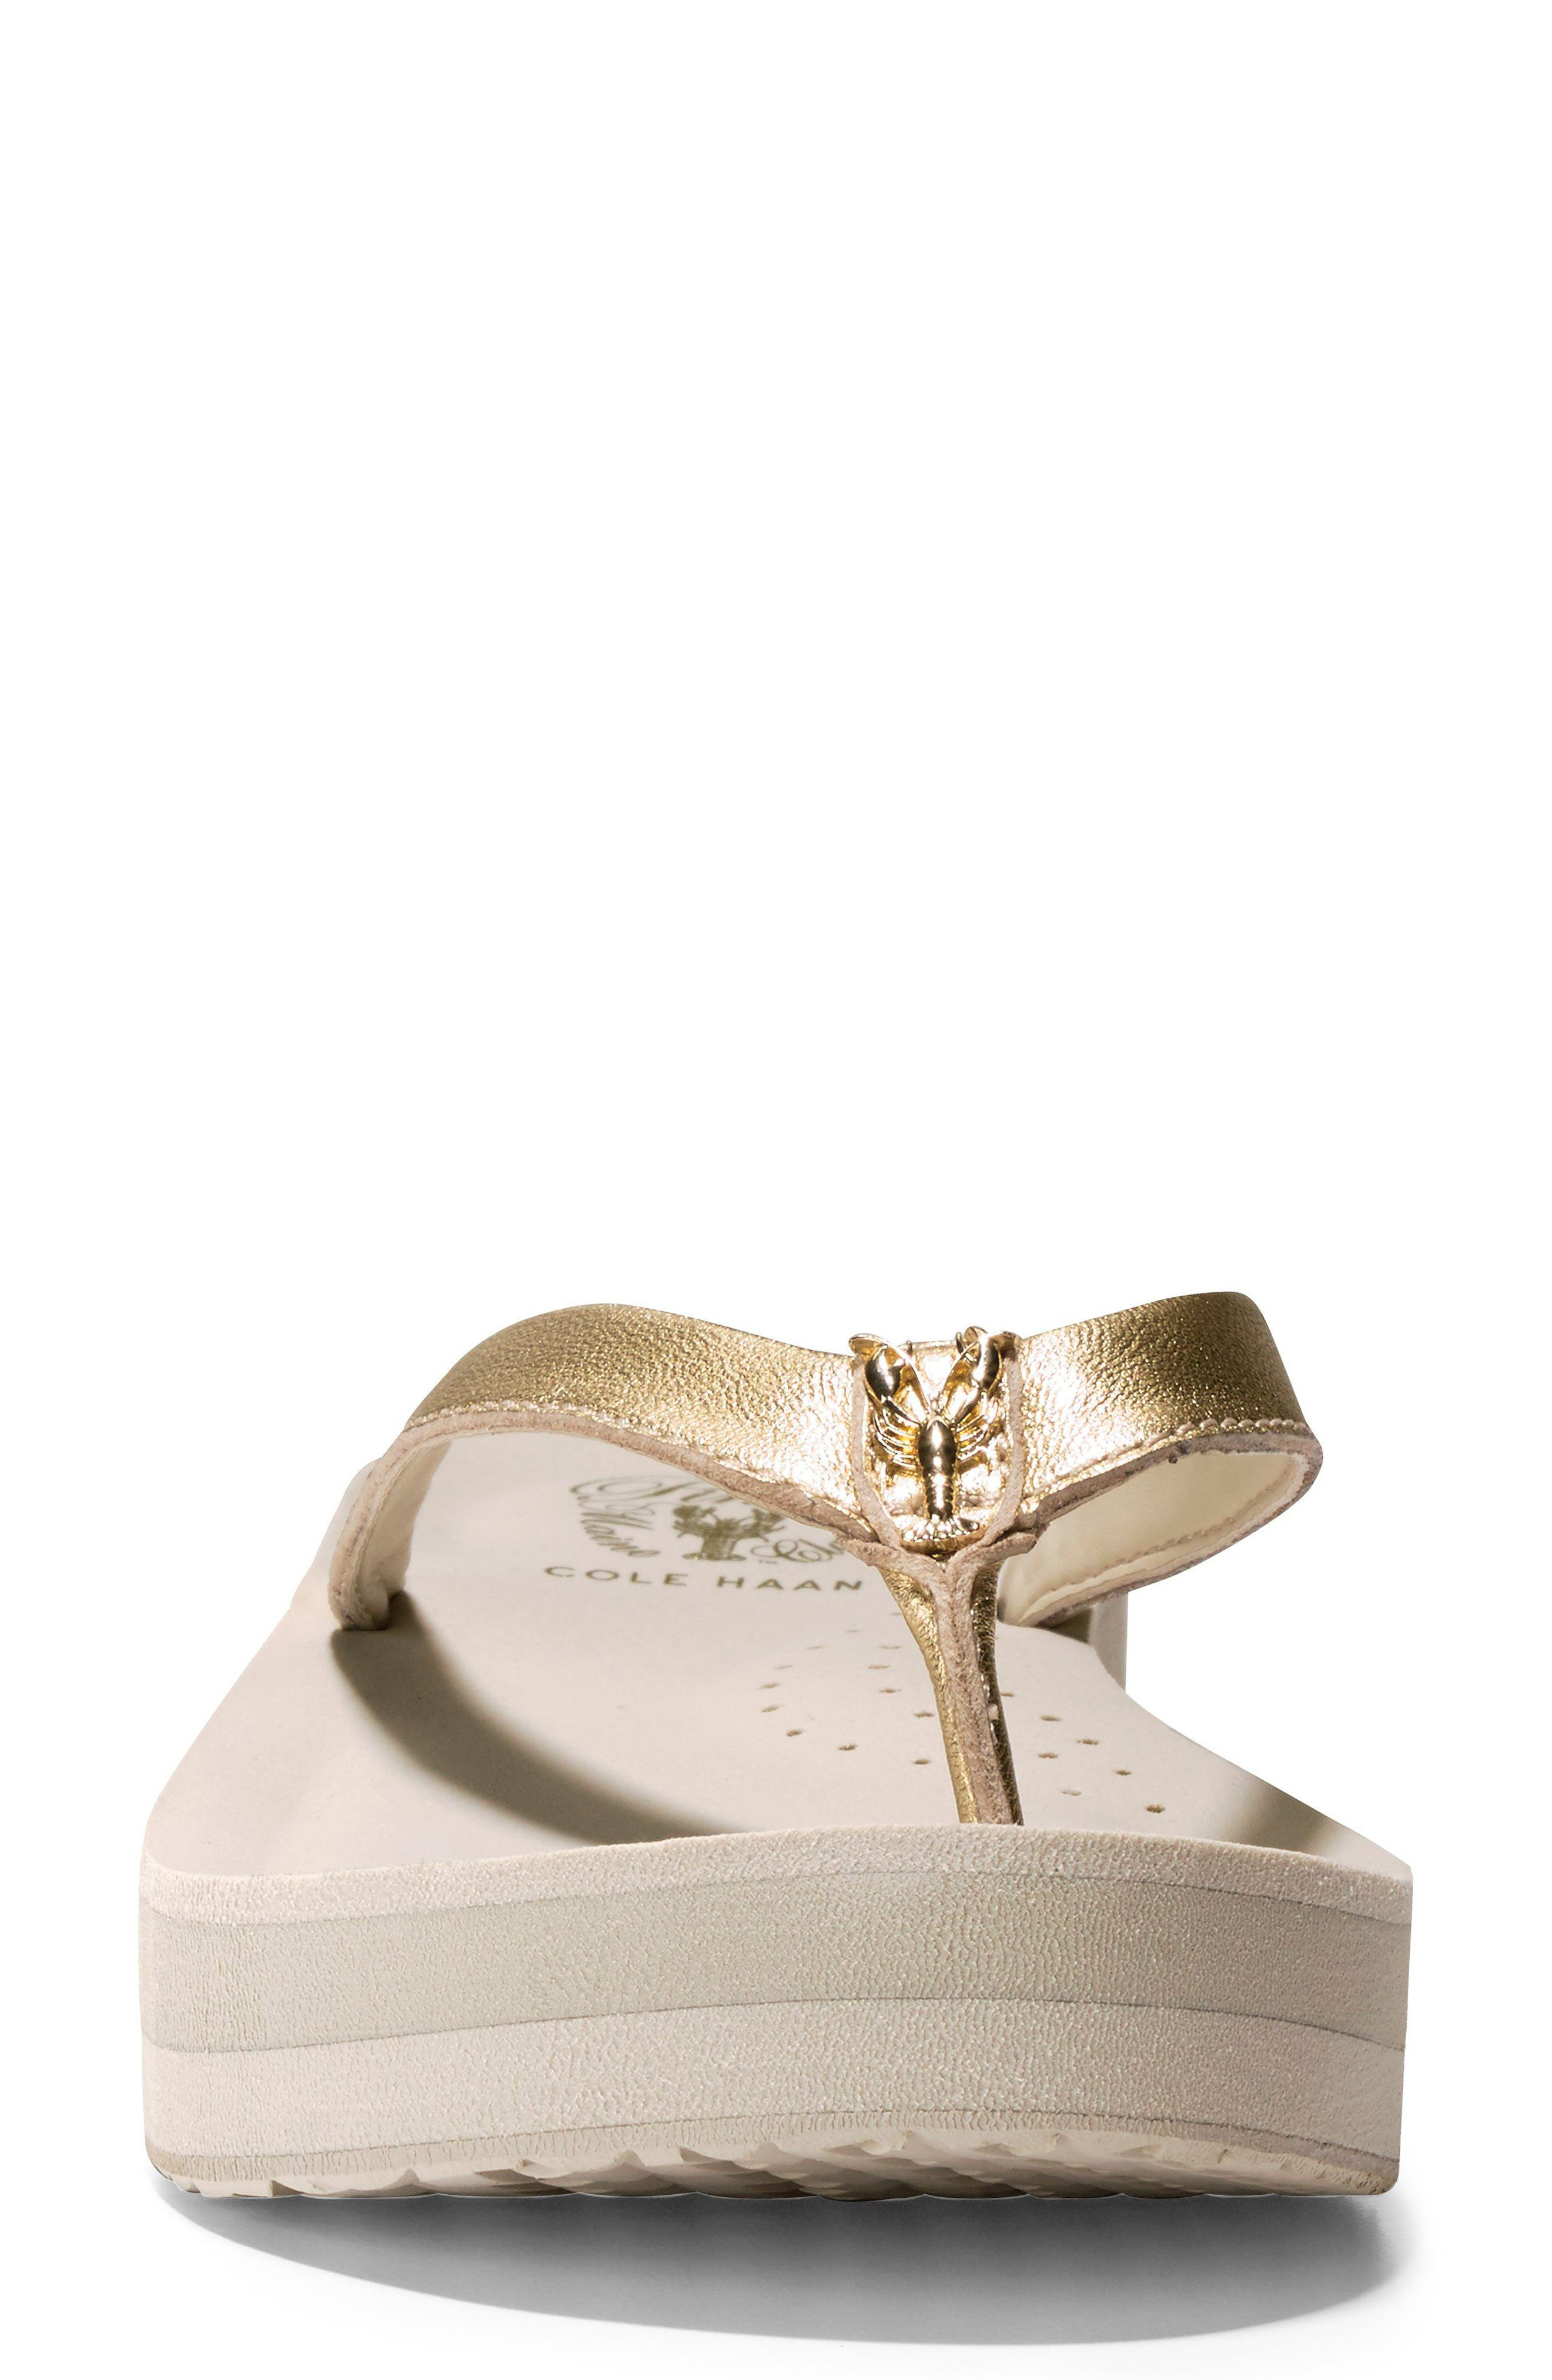 Lobster Wedge Flip Flop,                             Alternate thumbnail 4, color,                             Gold/ Pumice Stone Leather